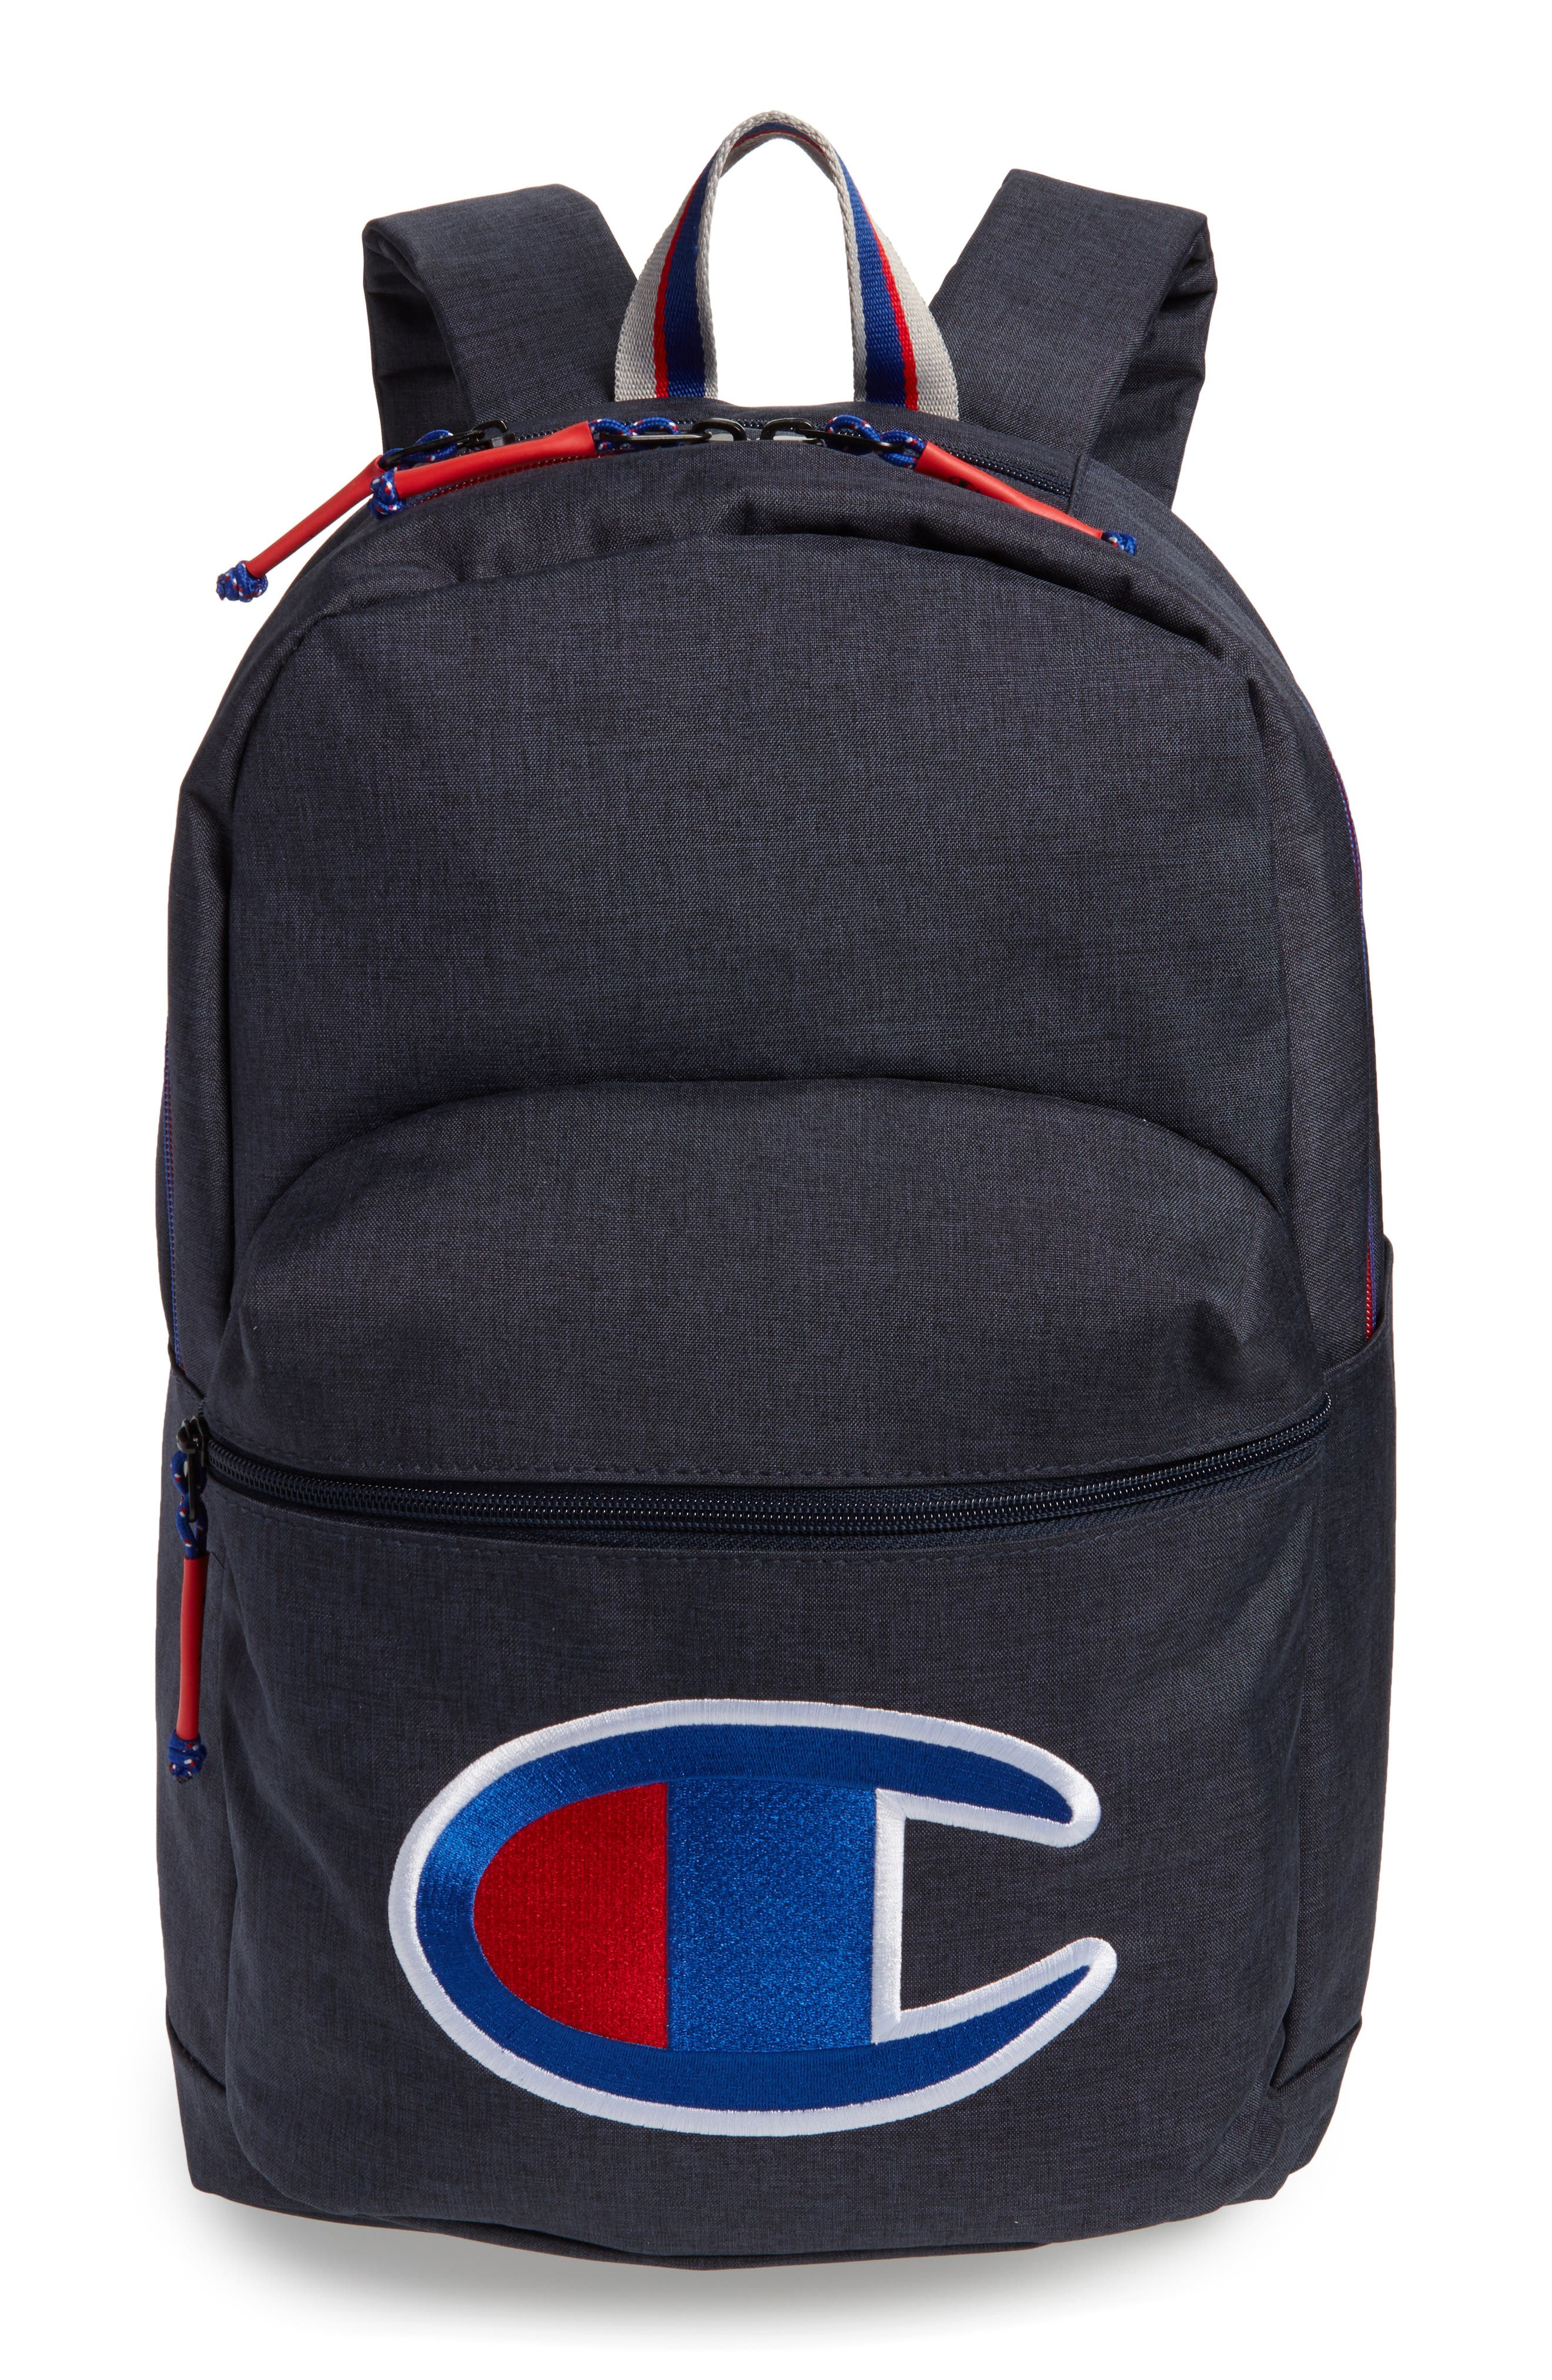 Supercize Backpack,                             Main thumbnail 1, color,                             Navy Heather